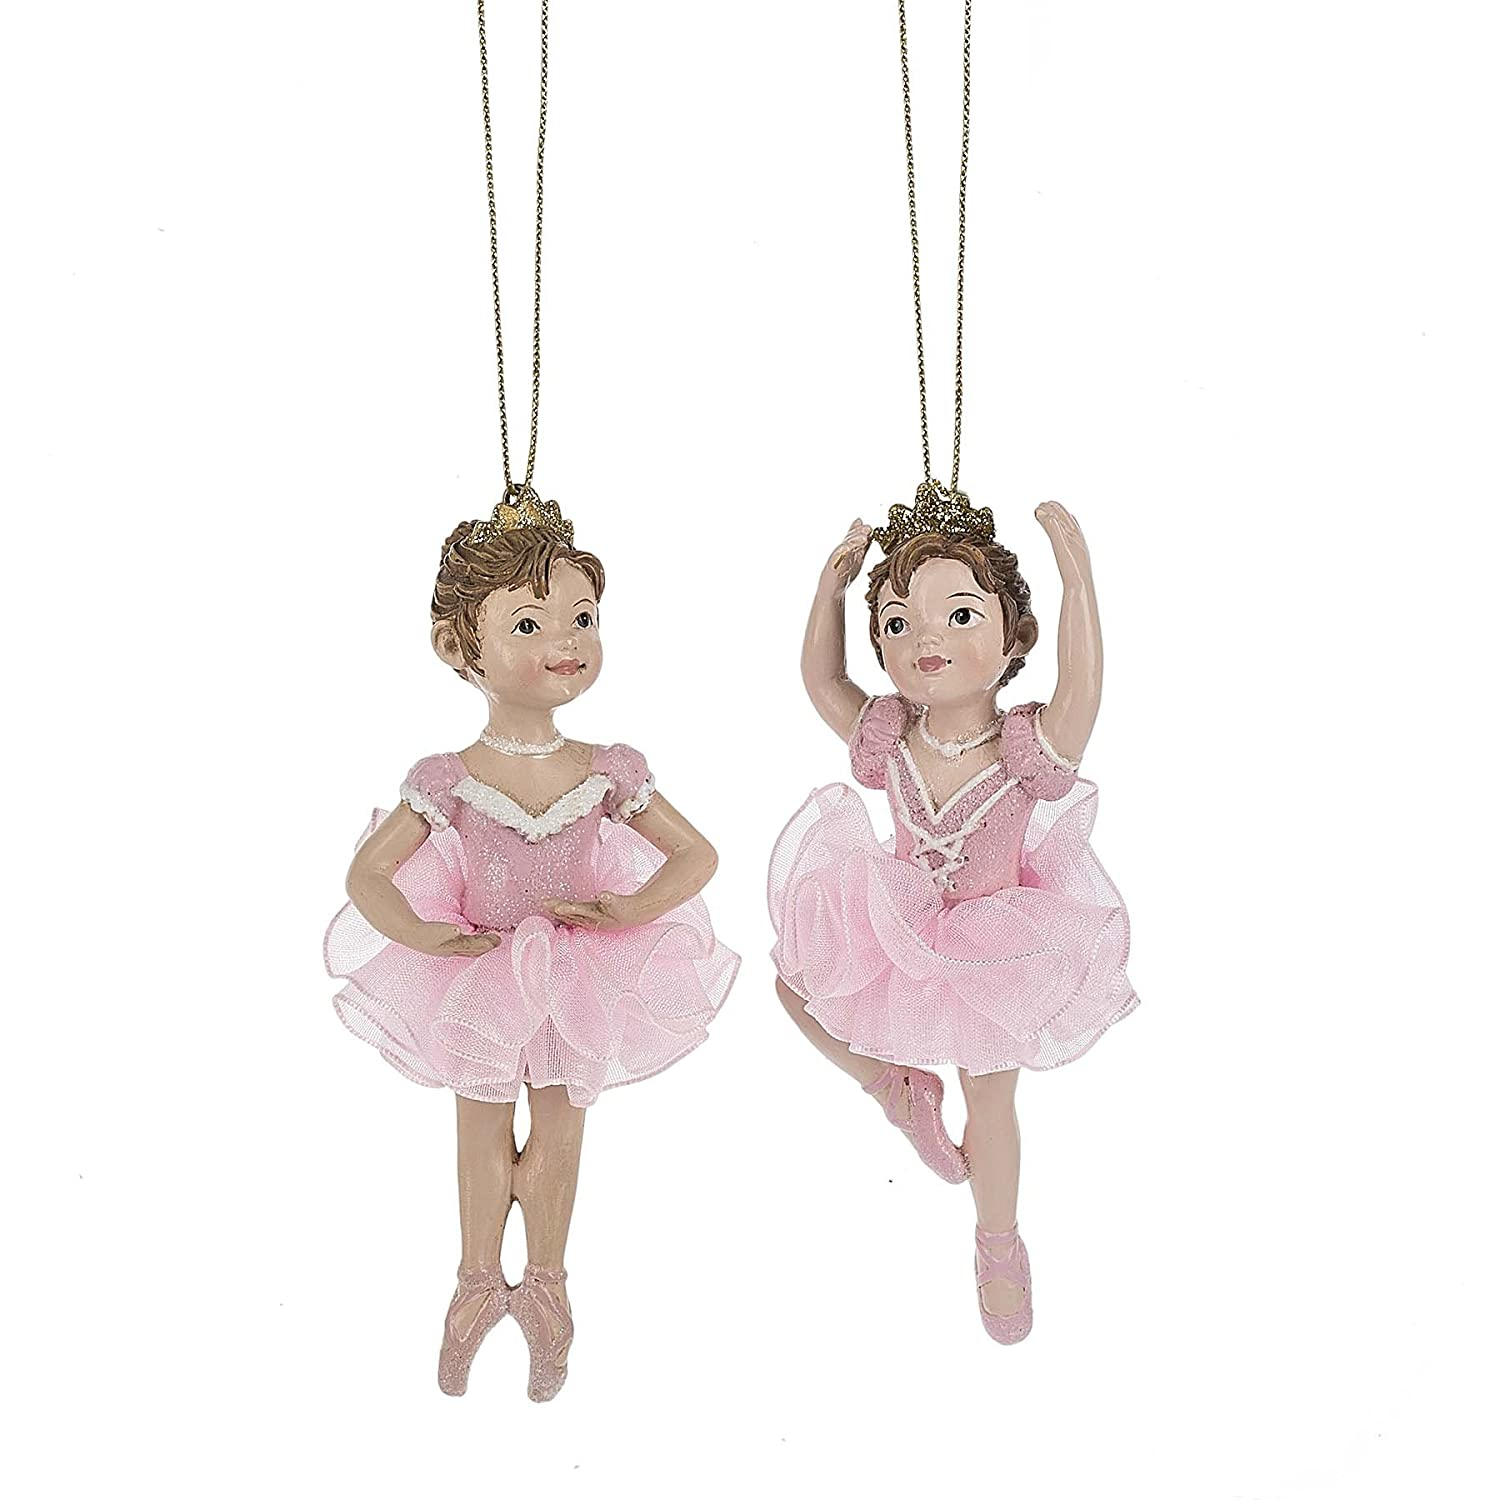 Sugarplum Fairy Ballet Princesses 4 Inch Resin Christmas Ornament Figurines Set of 2 Midwest CBK